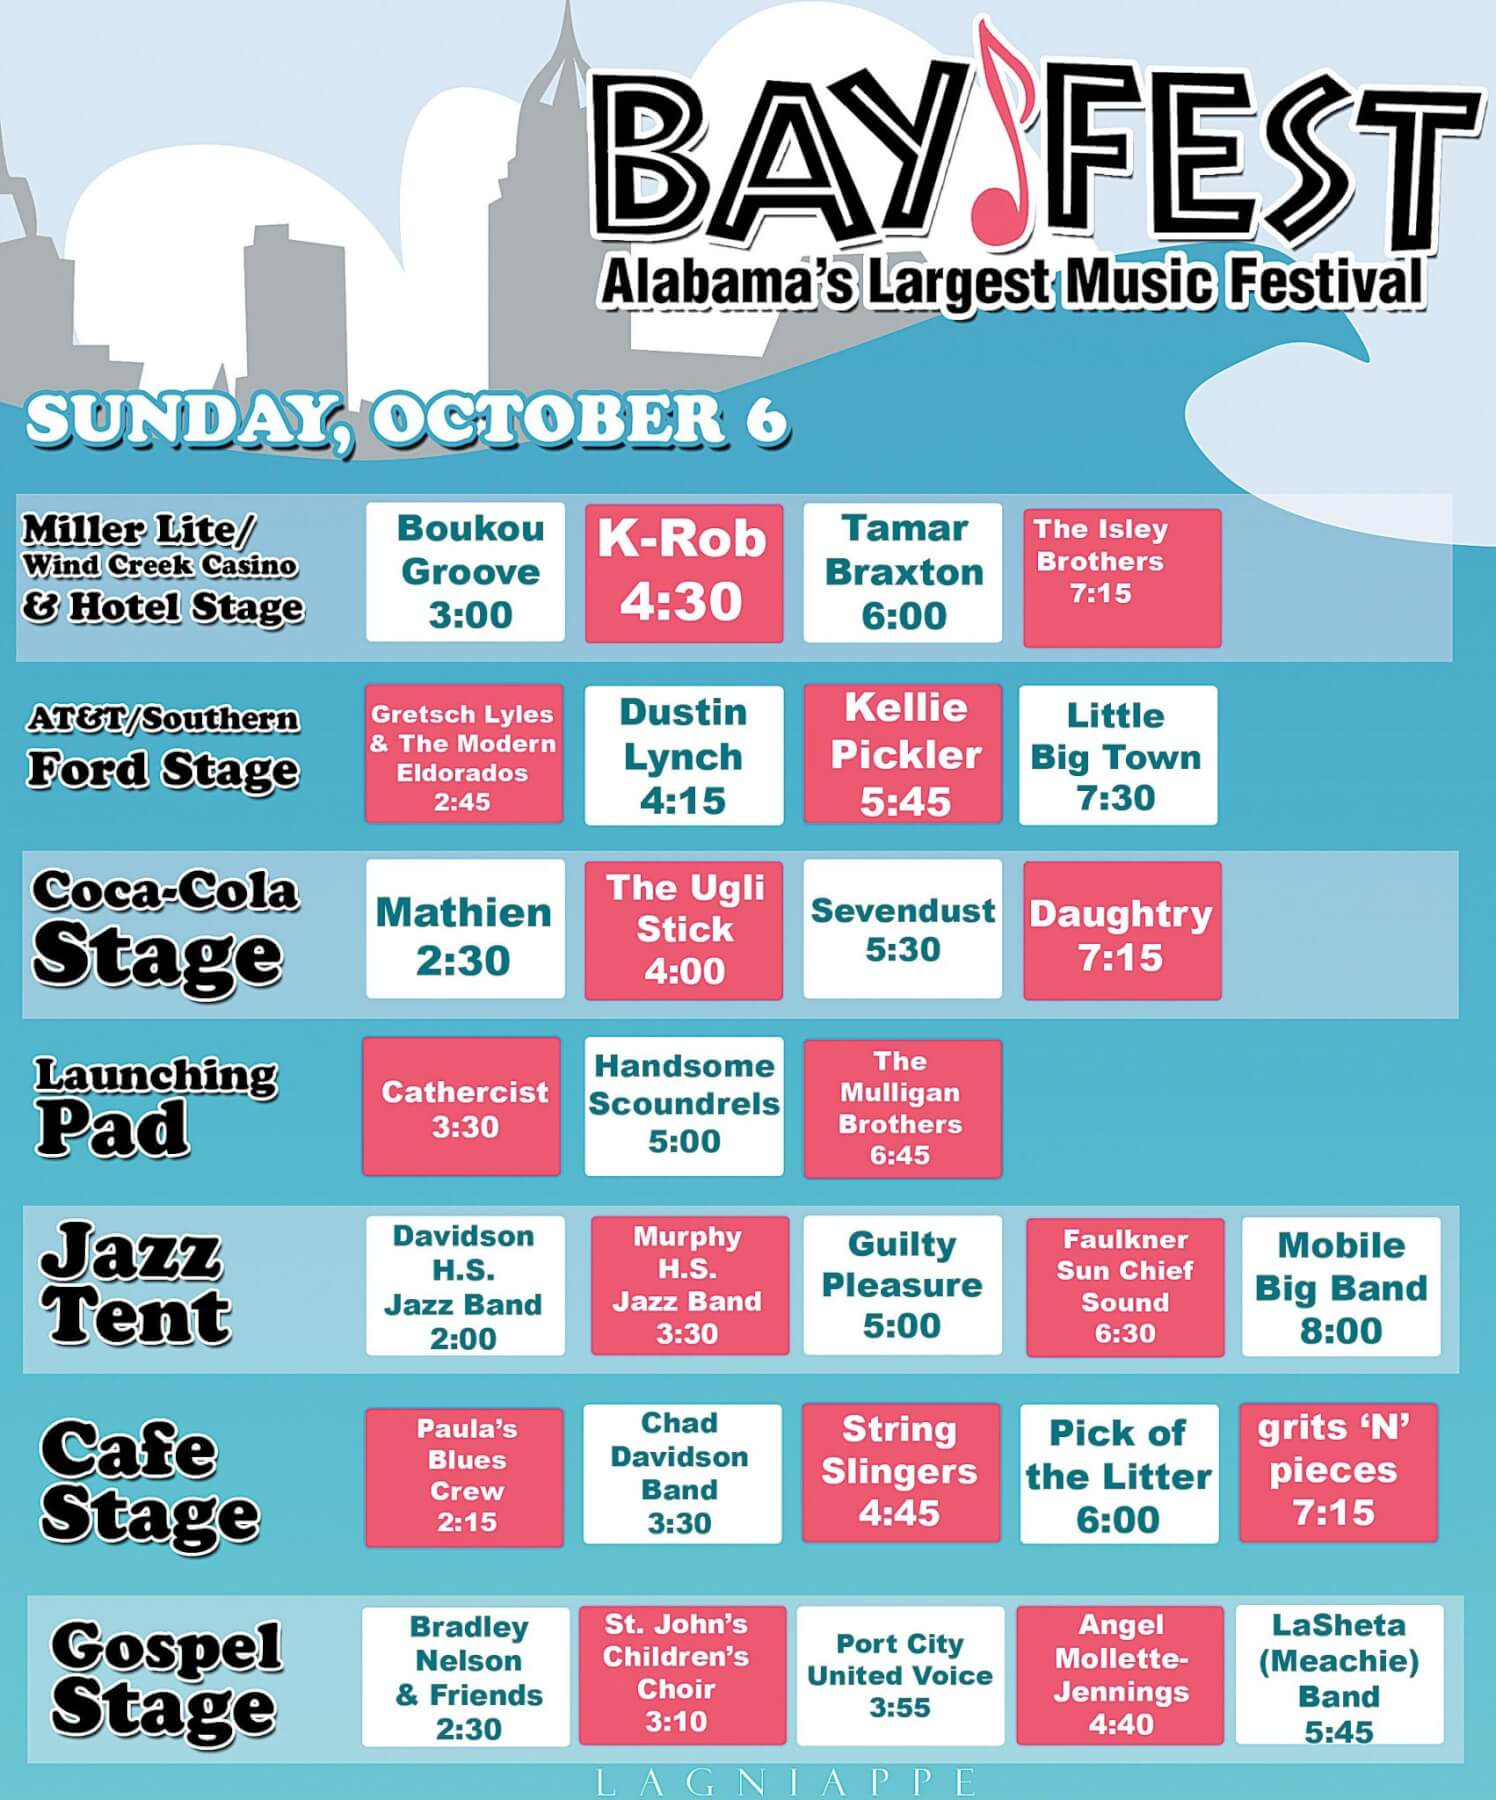 Bayfest band bios and schedule, Sunday Oct. 6 (UPDATED)